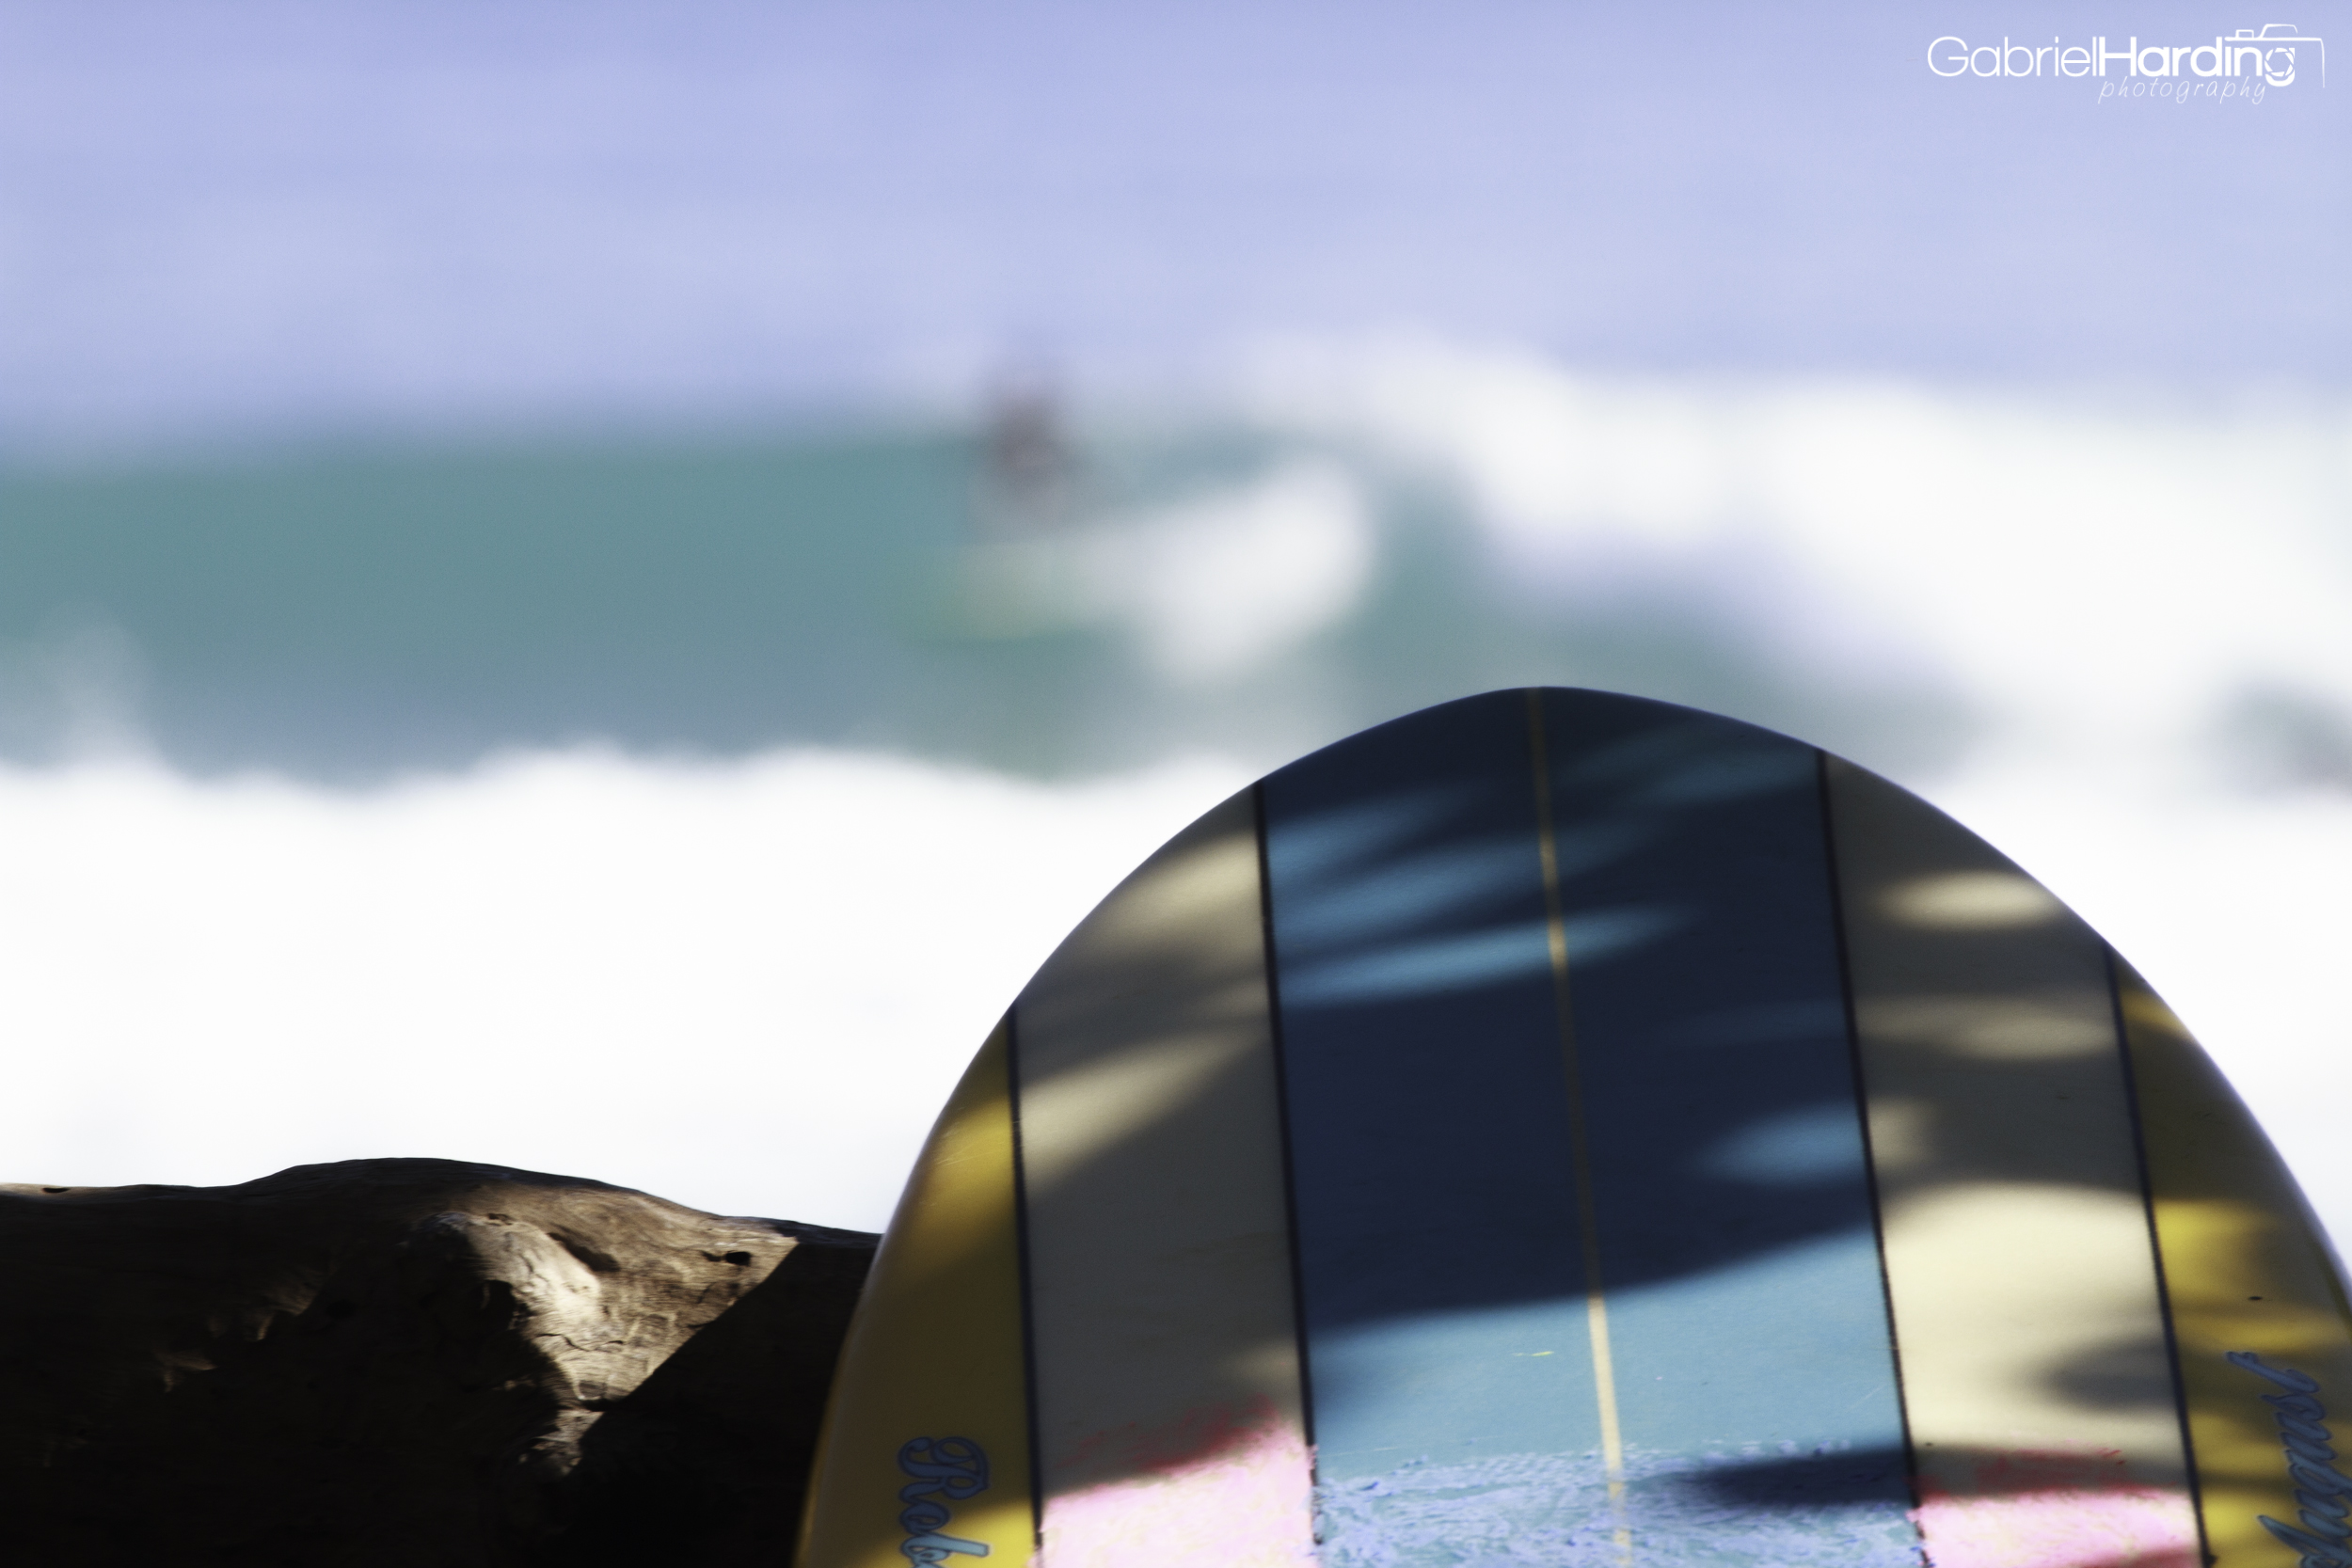 wallpaper wednesday – october 02 – surfs up | we travel and blog